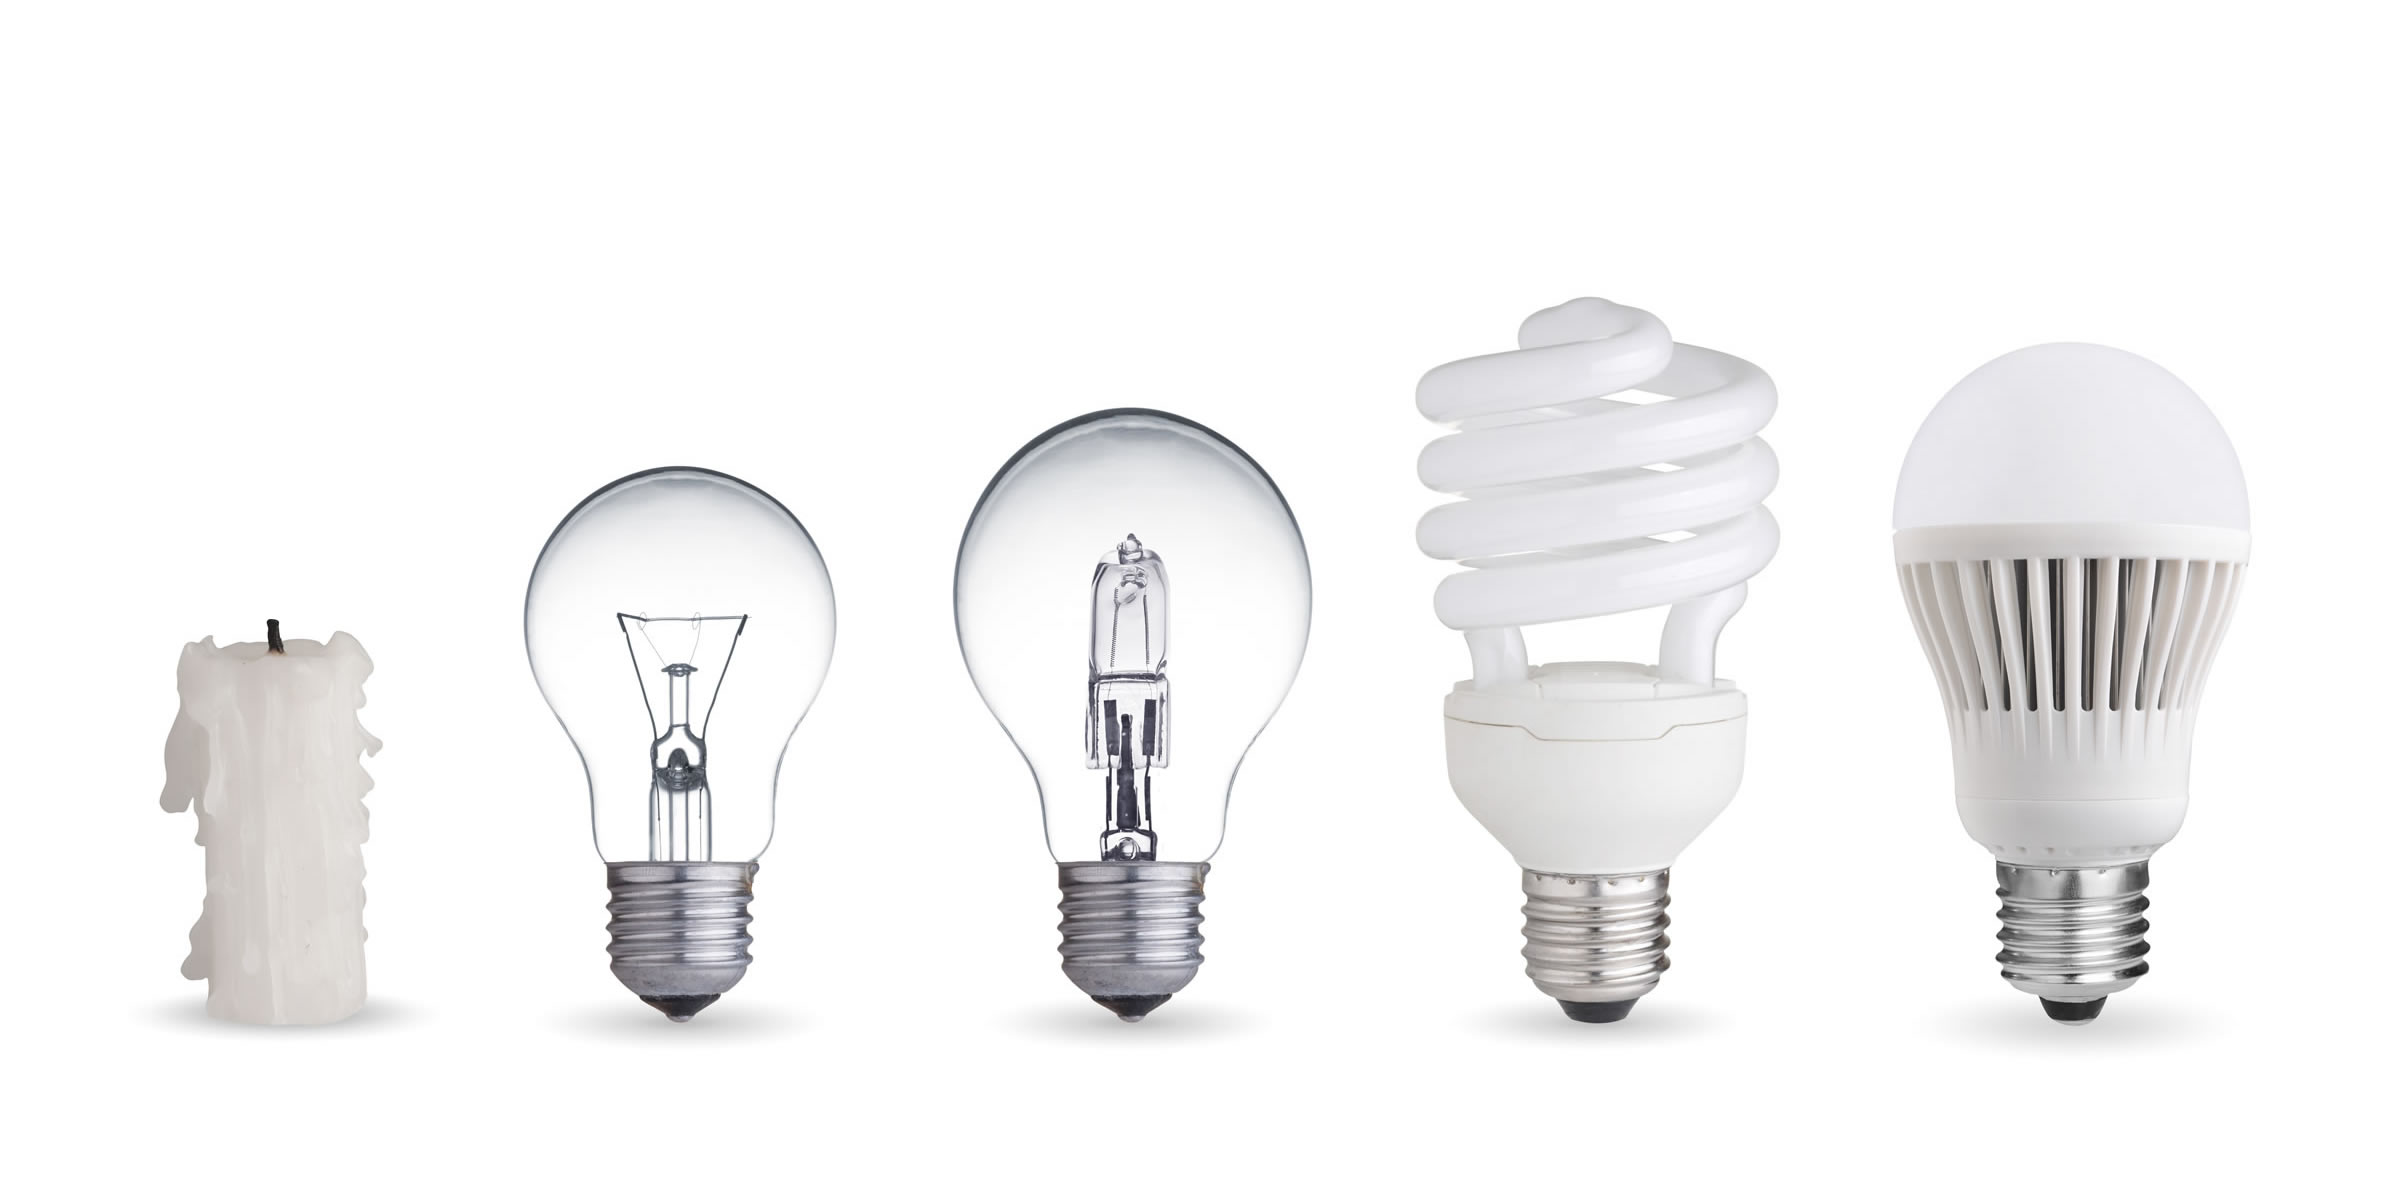 Why Is The Government Telling Us What Kind Of Light Bulbs